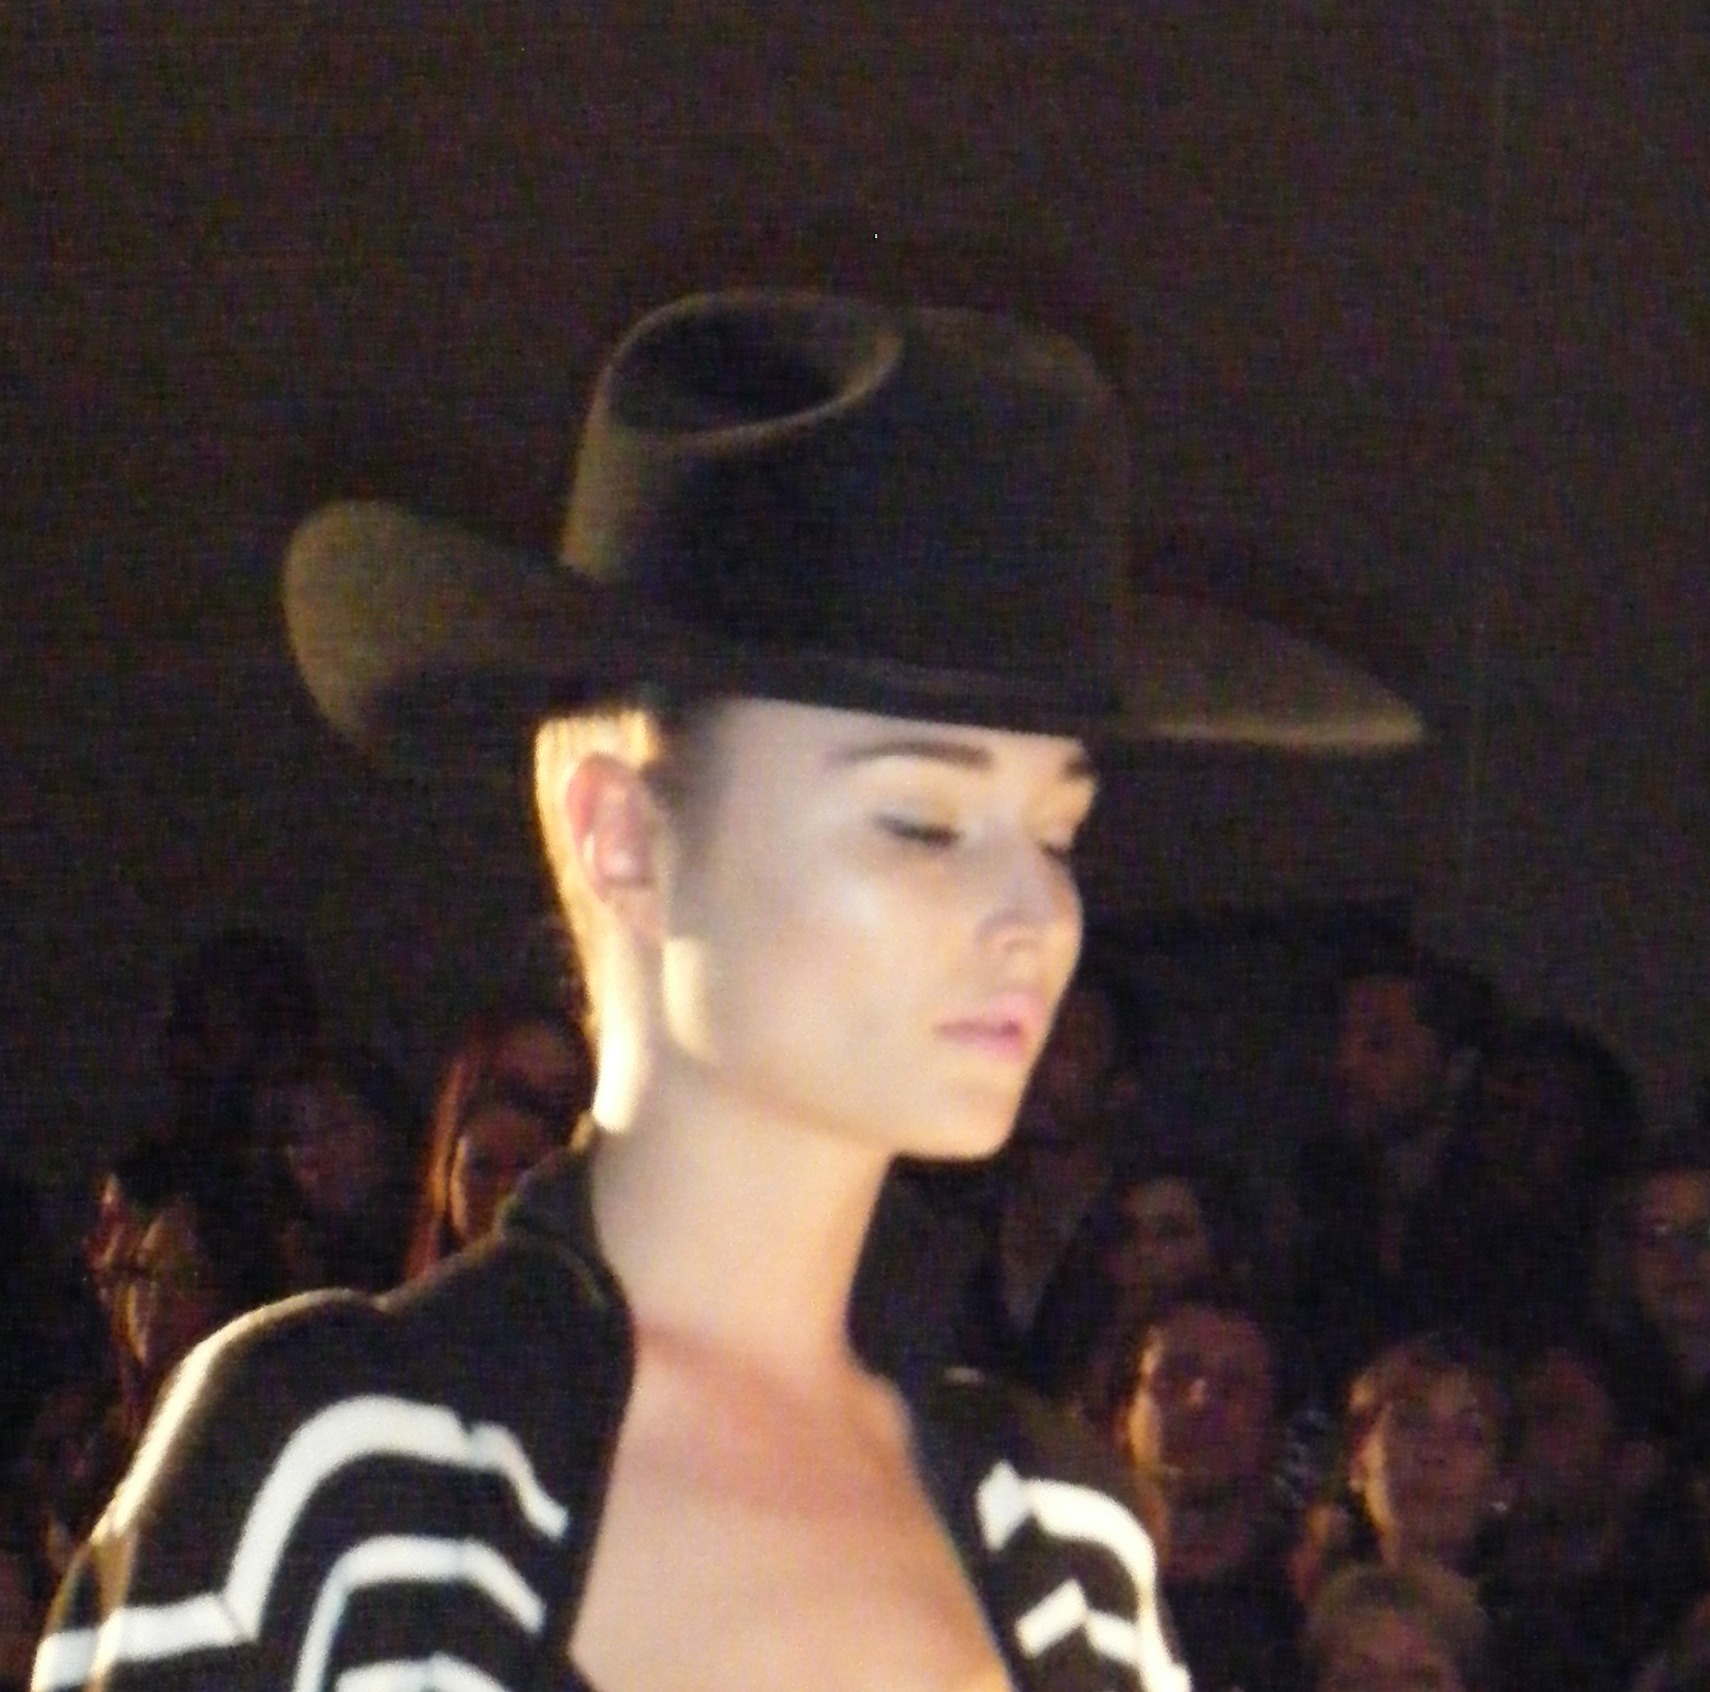 First look with cowboy hat.